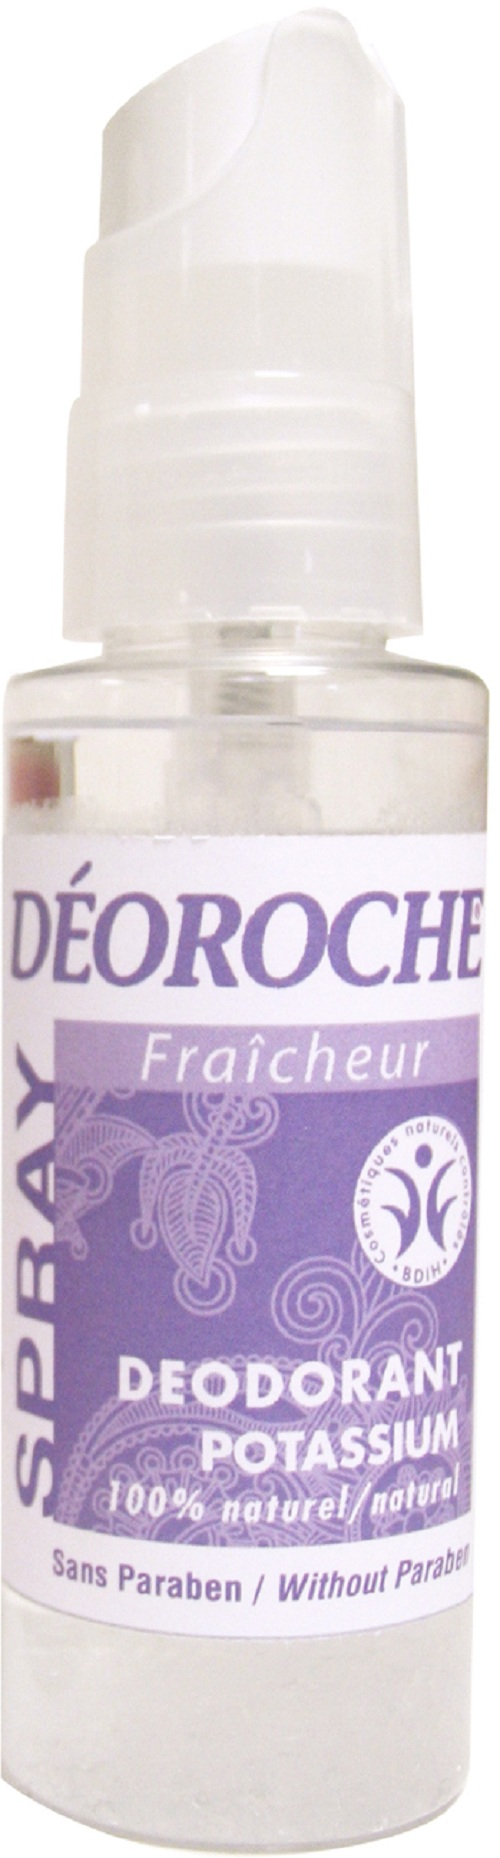 Déoroche Spray Floral Fraicheur 75ml BIO